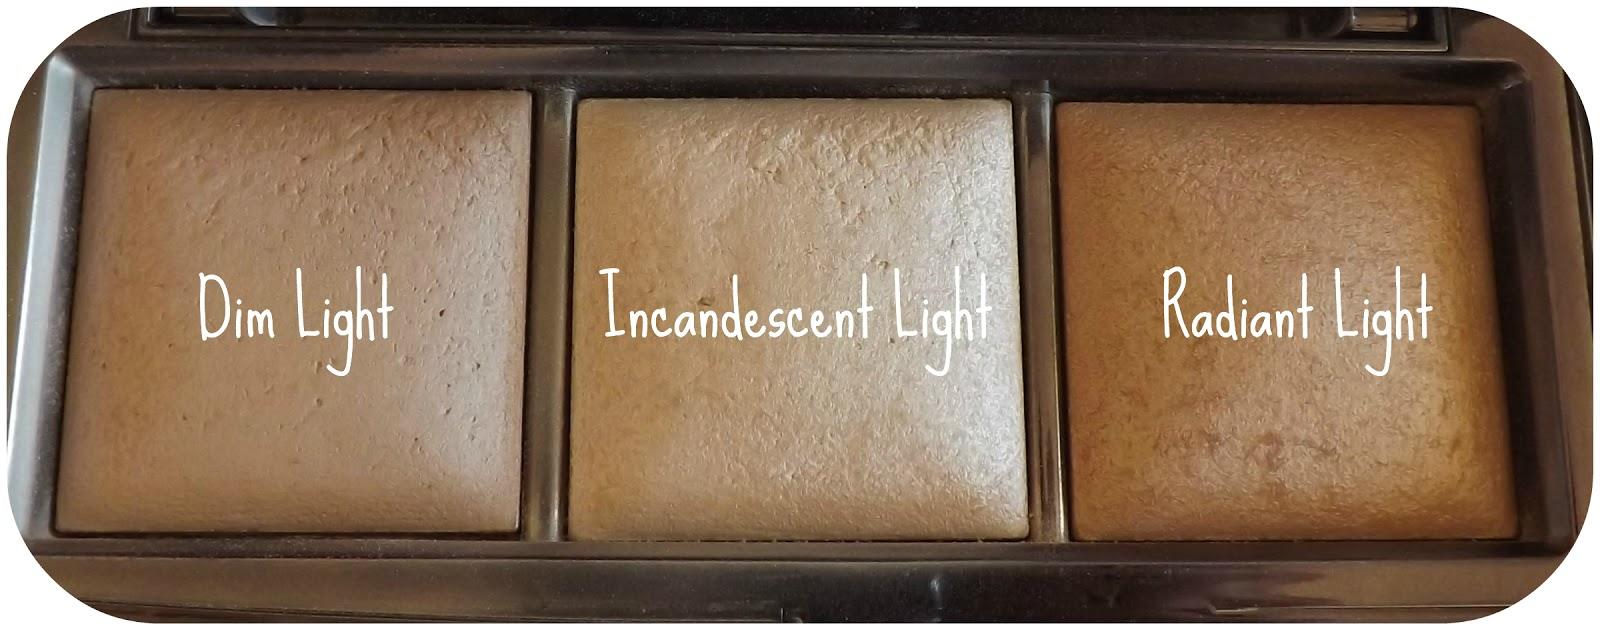 Each Of The Shades Are Incredibly Creamy And Blend Beautifully Onto The  Skin. The Finish Is So Seamless And The Powders Are Very Easy To Wear.